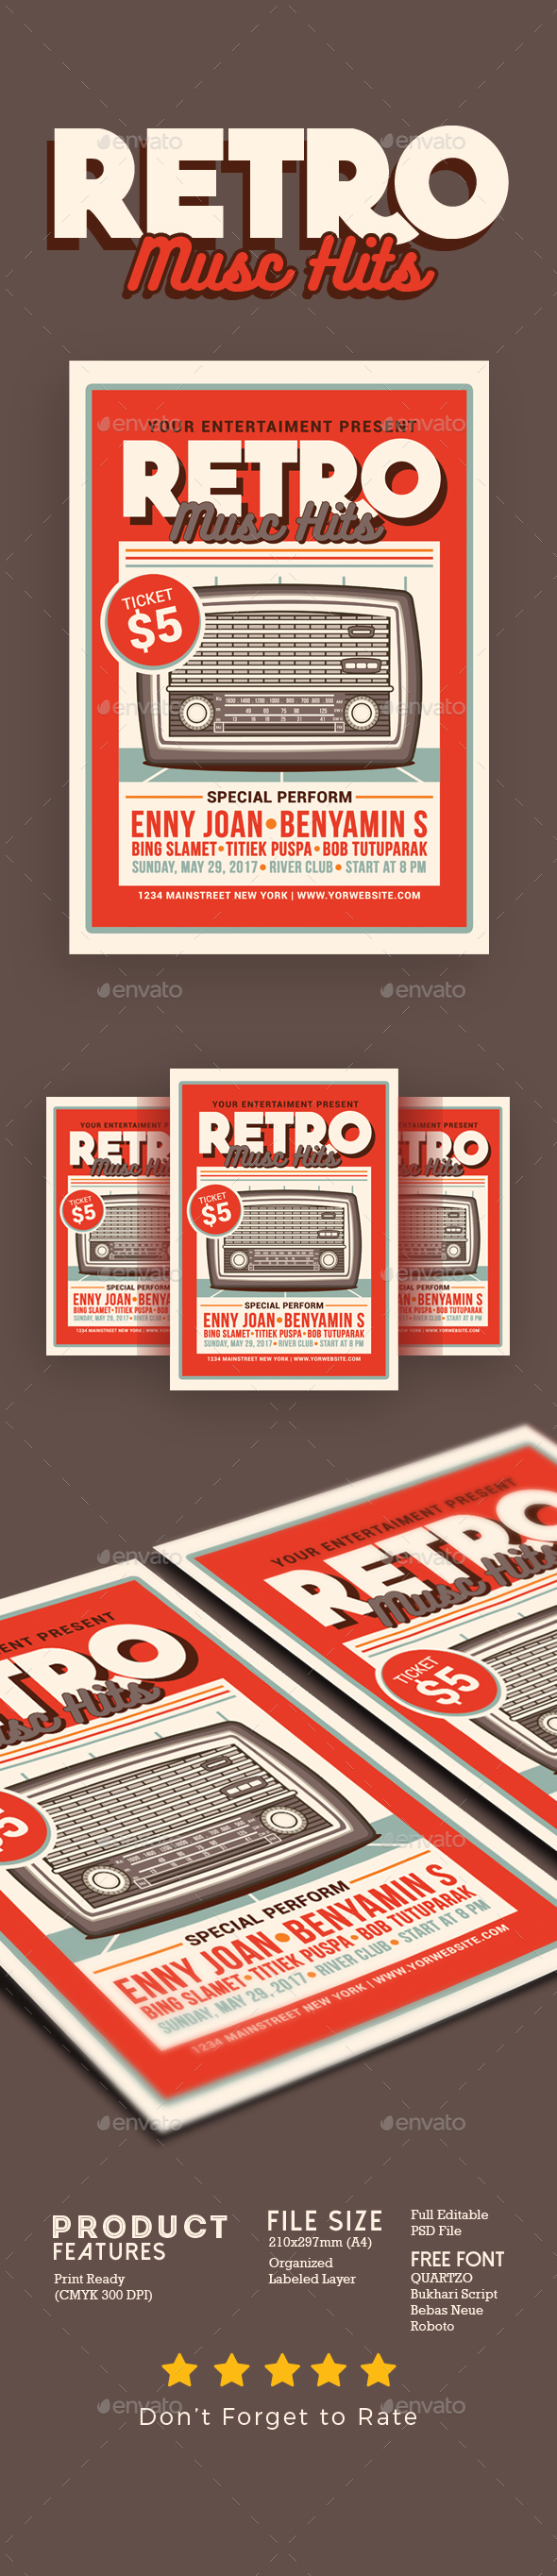 Retro Music Hits Flyer - Events Flyers